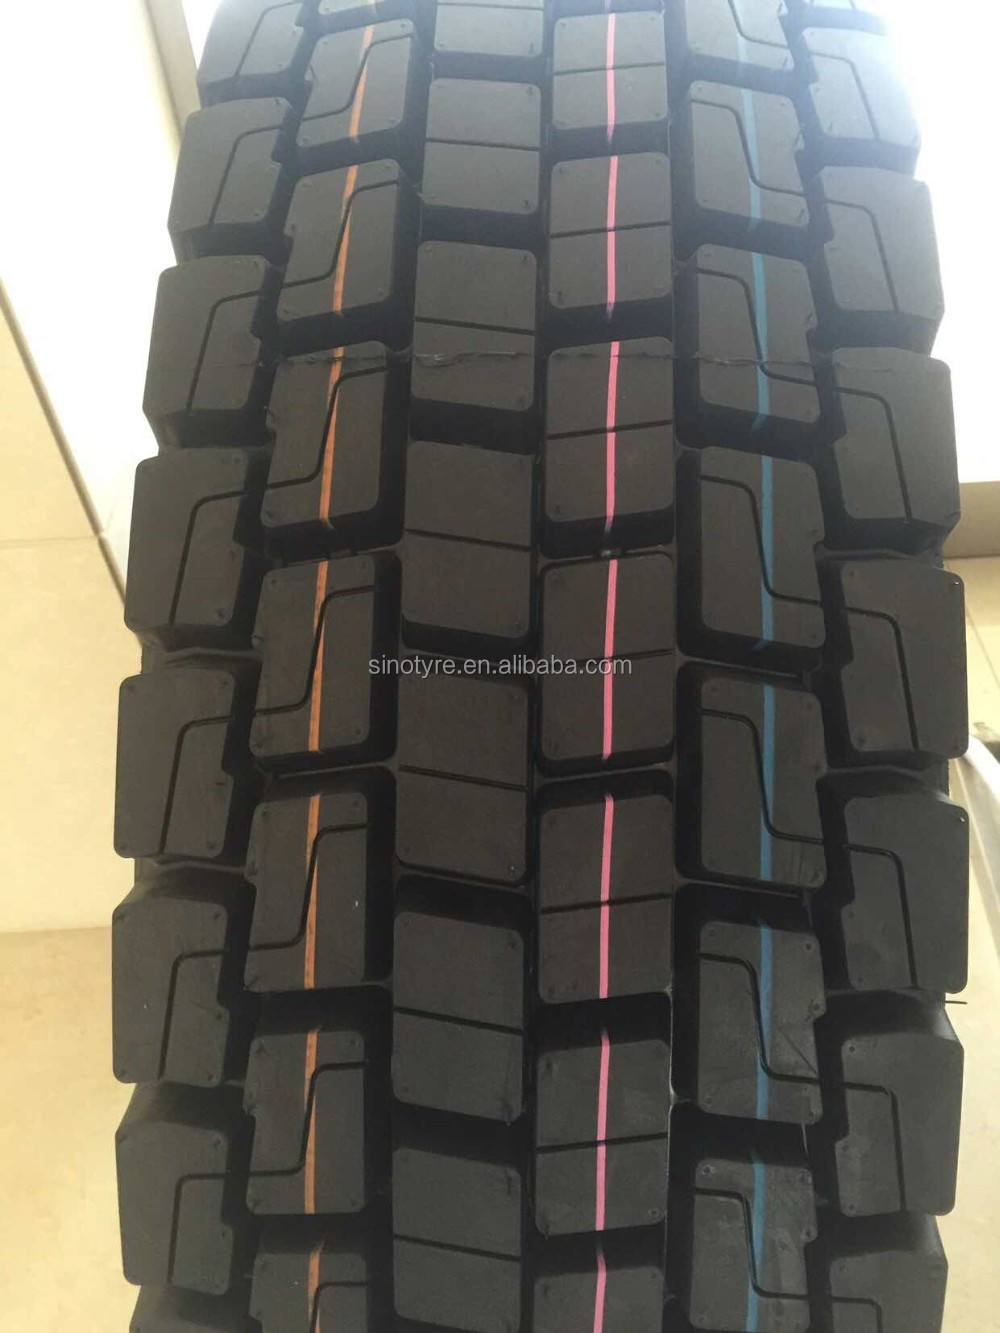 295 80 22.5 295/80r22.5 295 80r 22.5 radial truck tires with German warrant